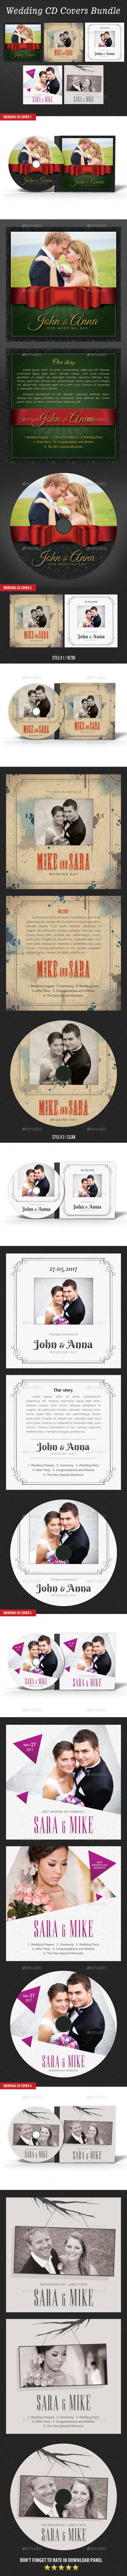 GraphicRiver 4 in 1 Wedding CD Cover Templates Bundle V2 20502924